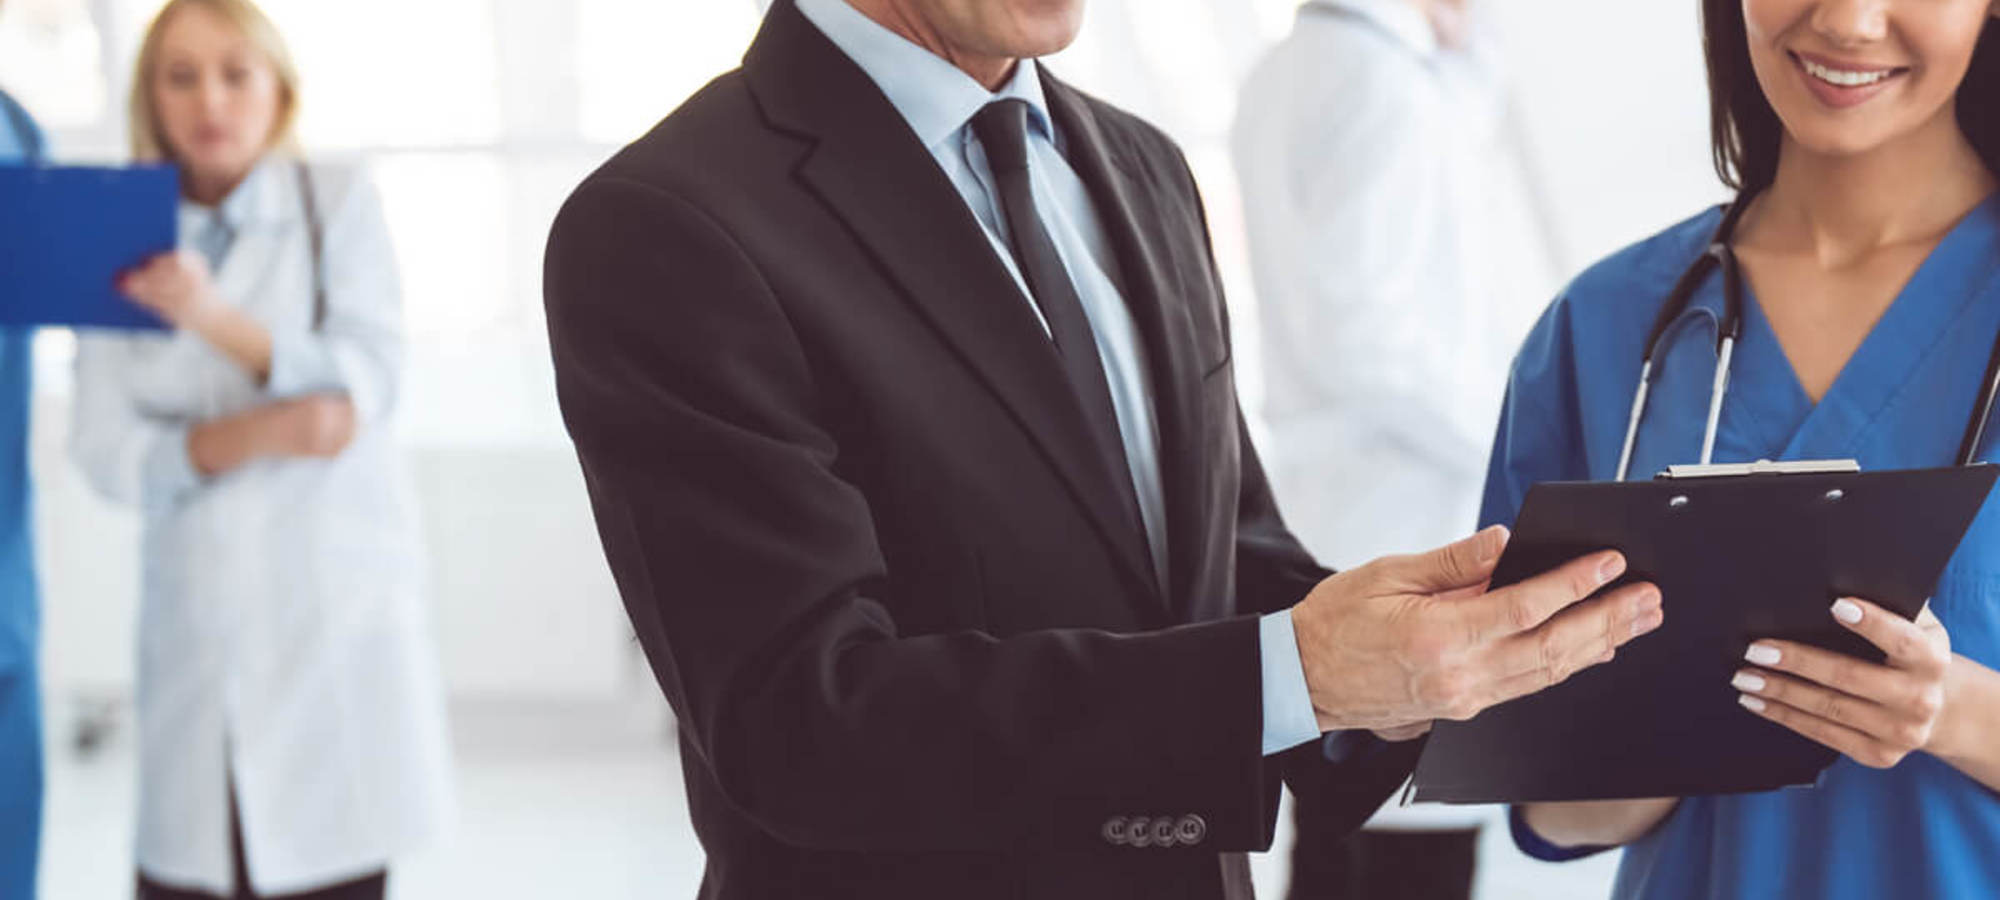 review recruitment services for general managers worldwide